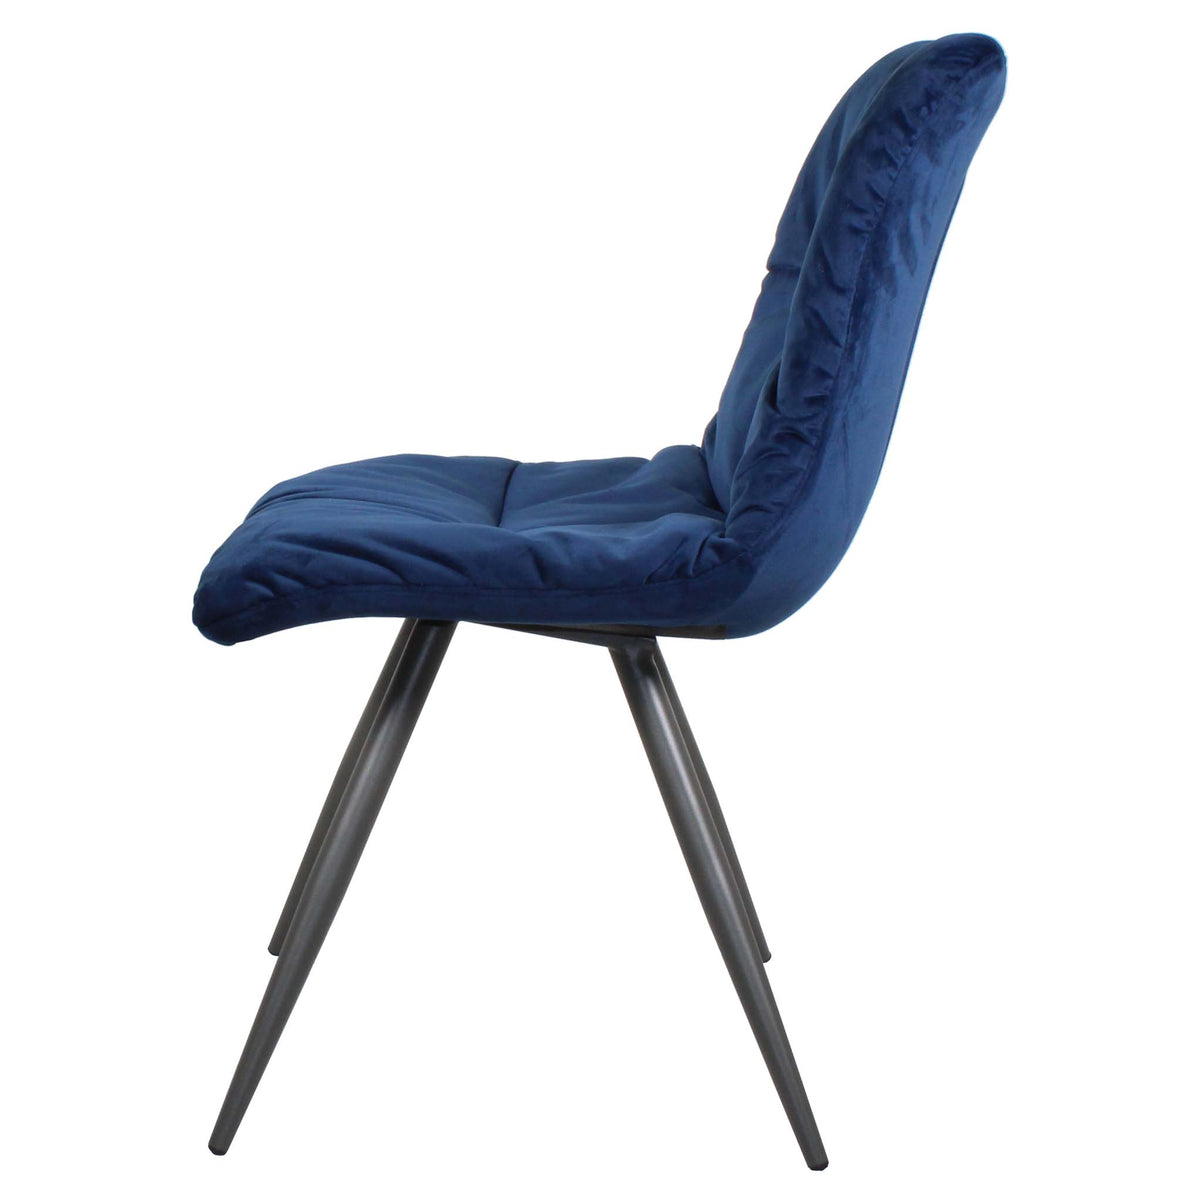 Side view of Blue Addison Velvet Chair from Roseland Furniture